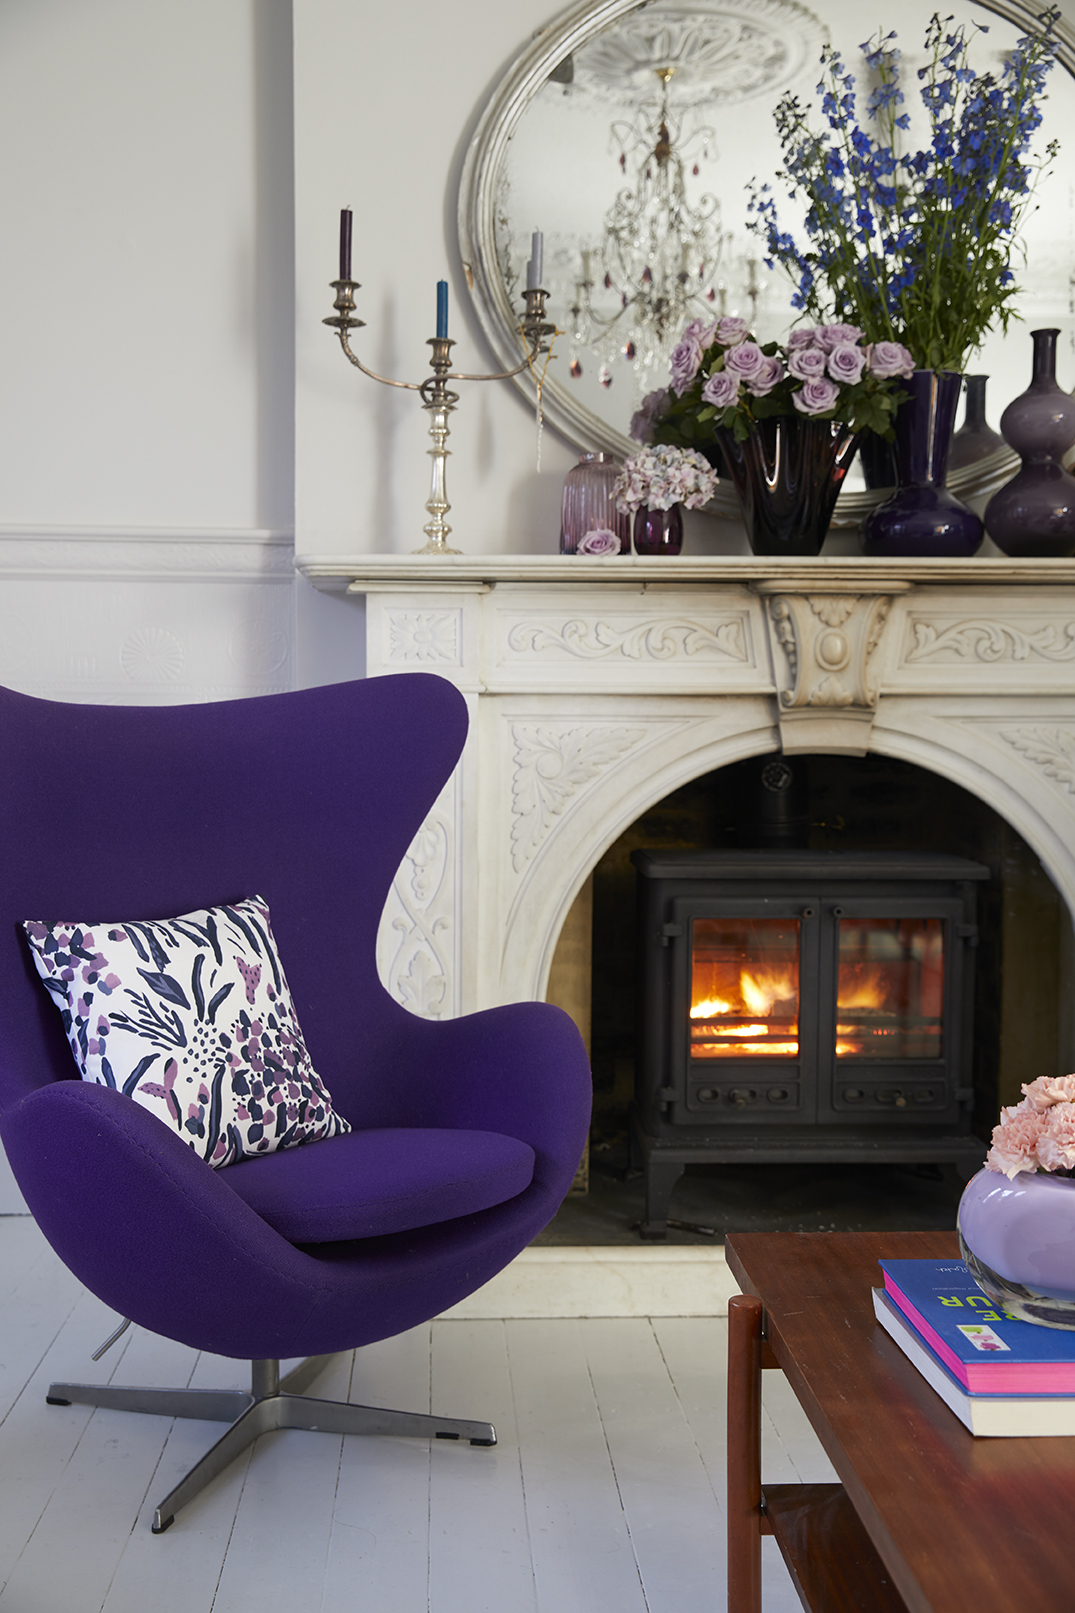 Pantone Colour Of The Year For 2018 Is Ultra Violet. This Egg Chair By Arne